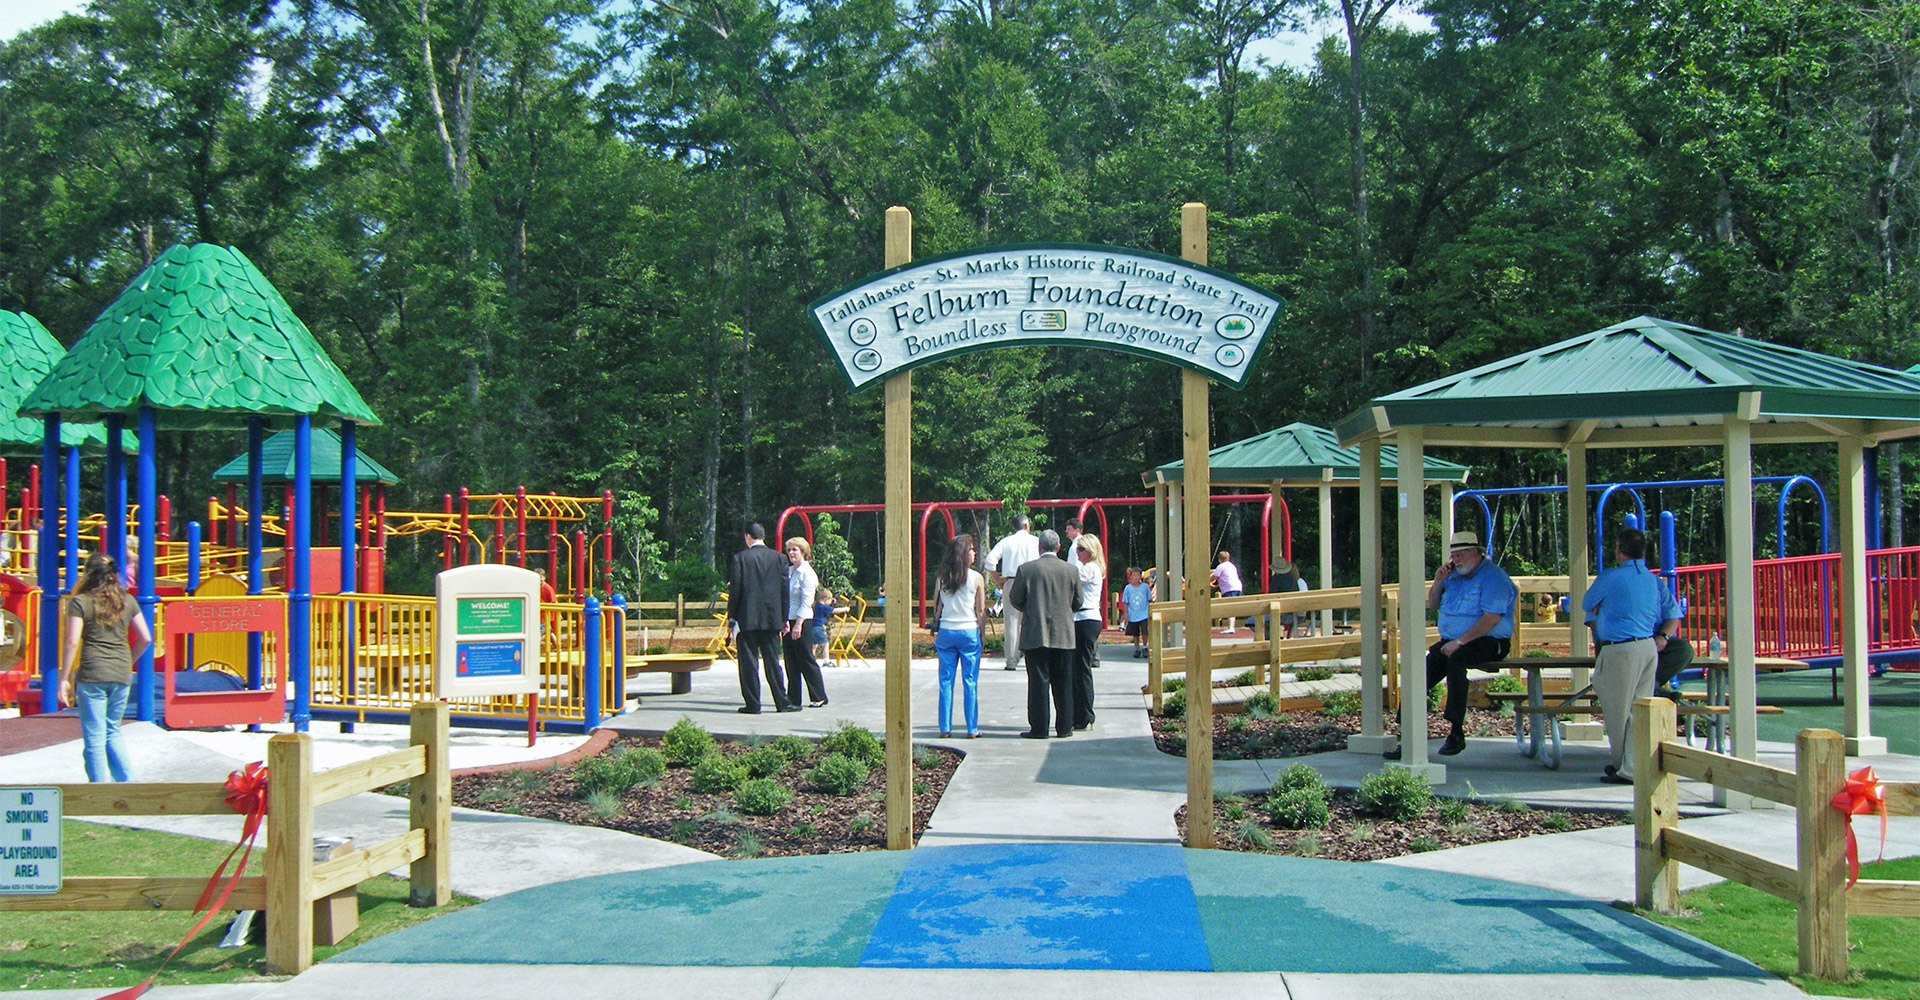 Entrance to Felburn Foundation Boundless Playground.